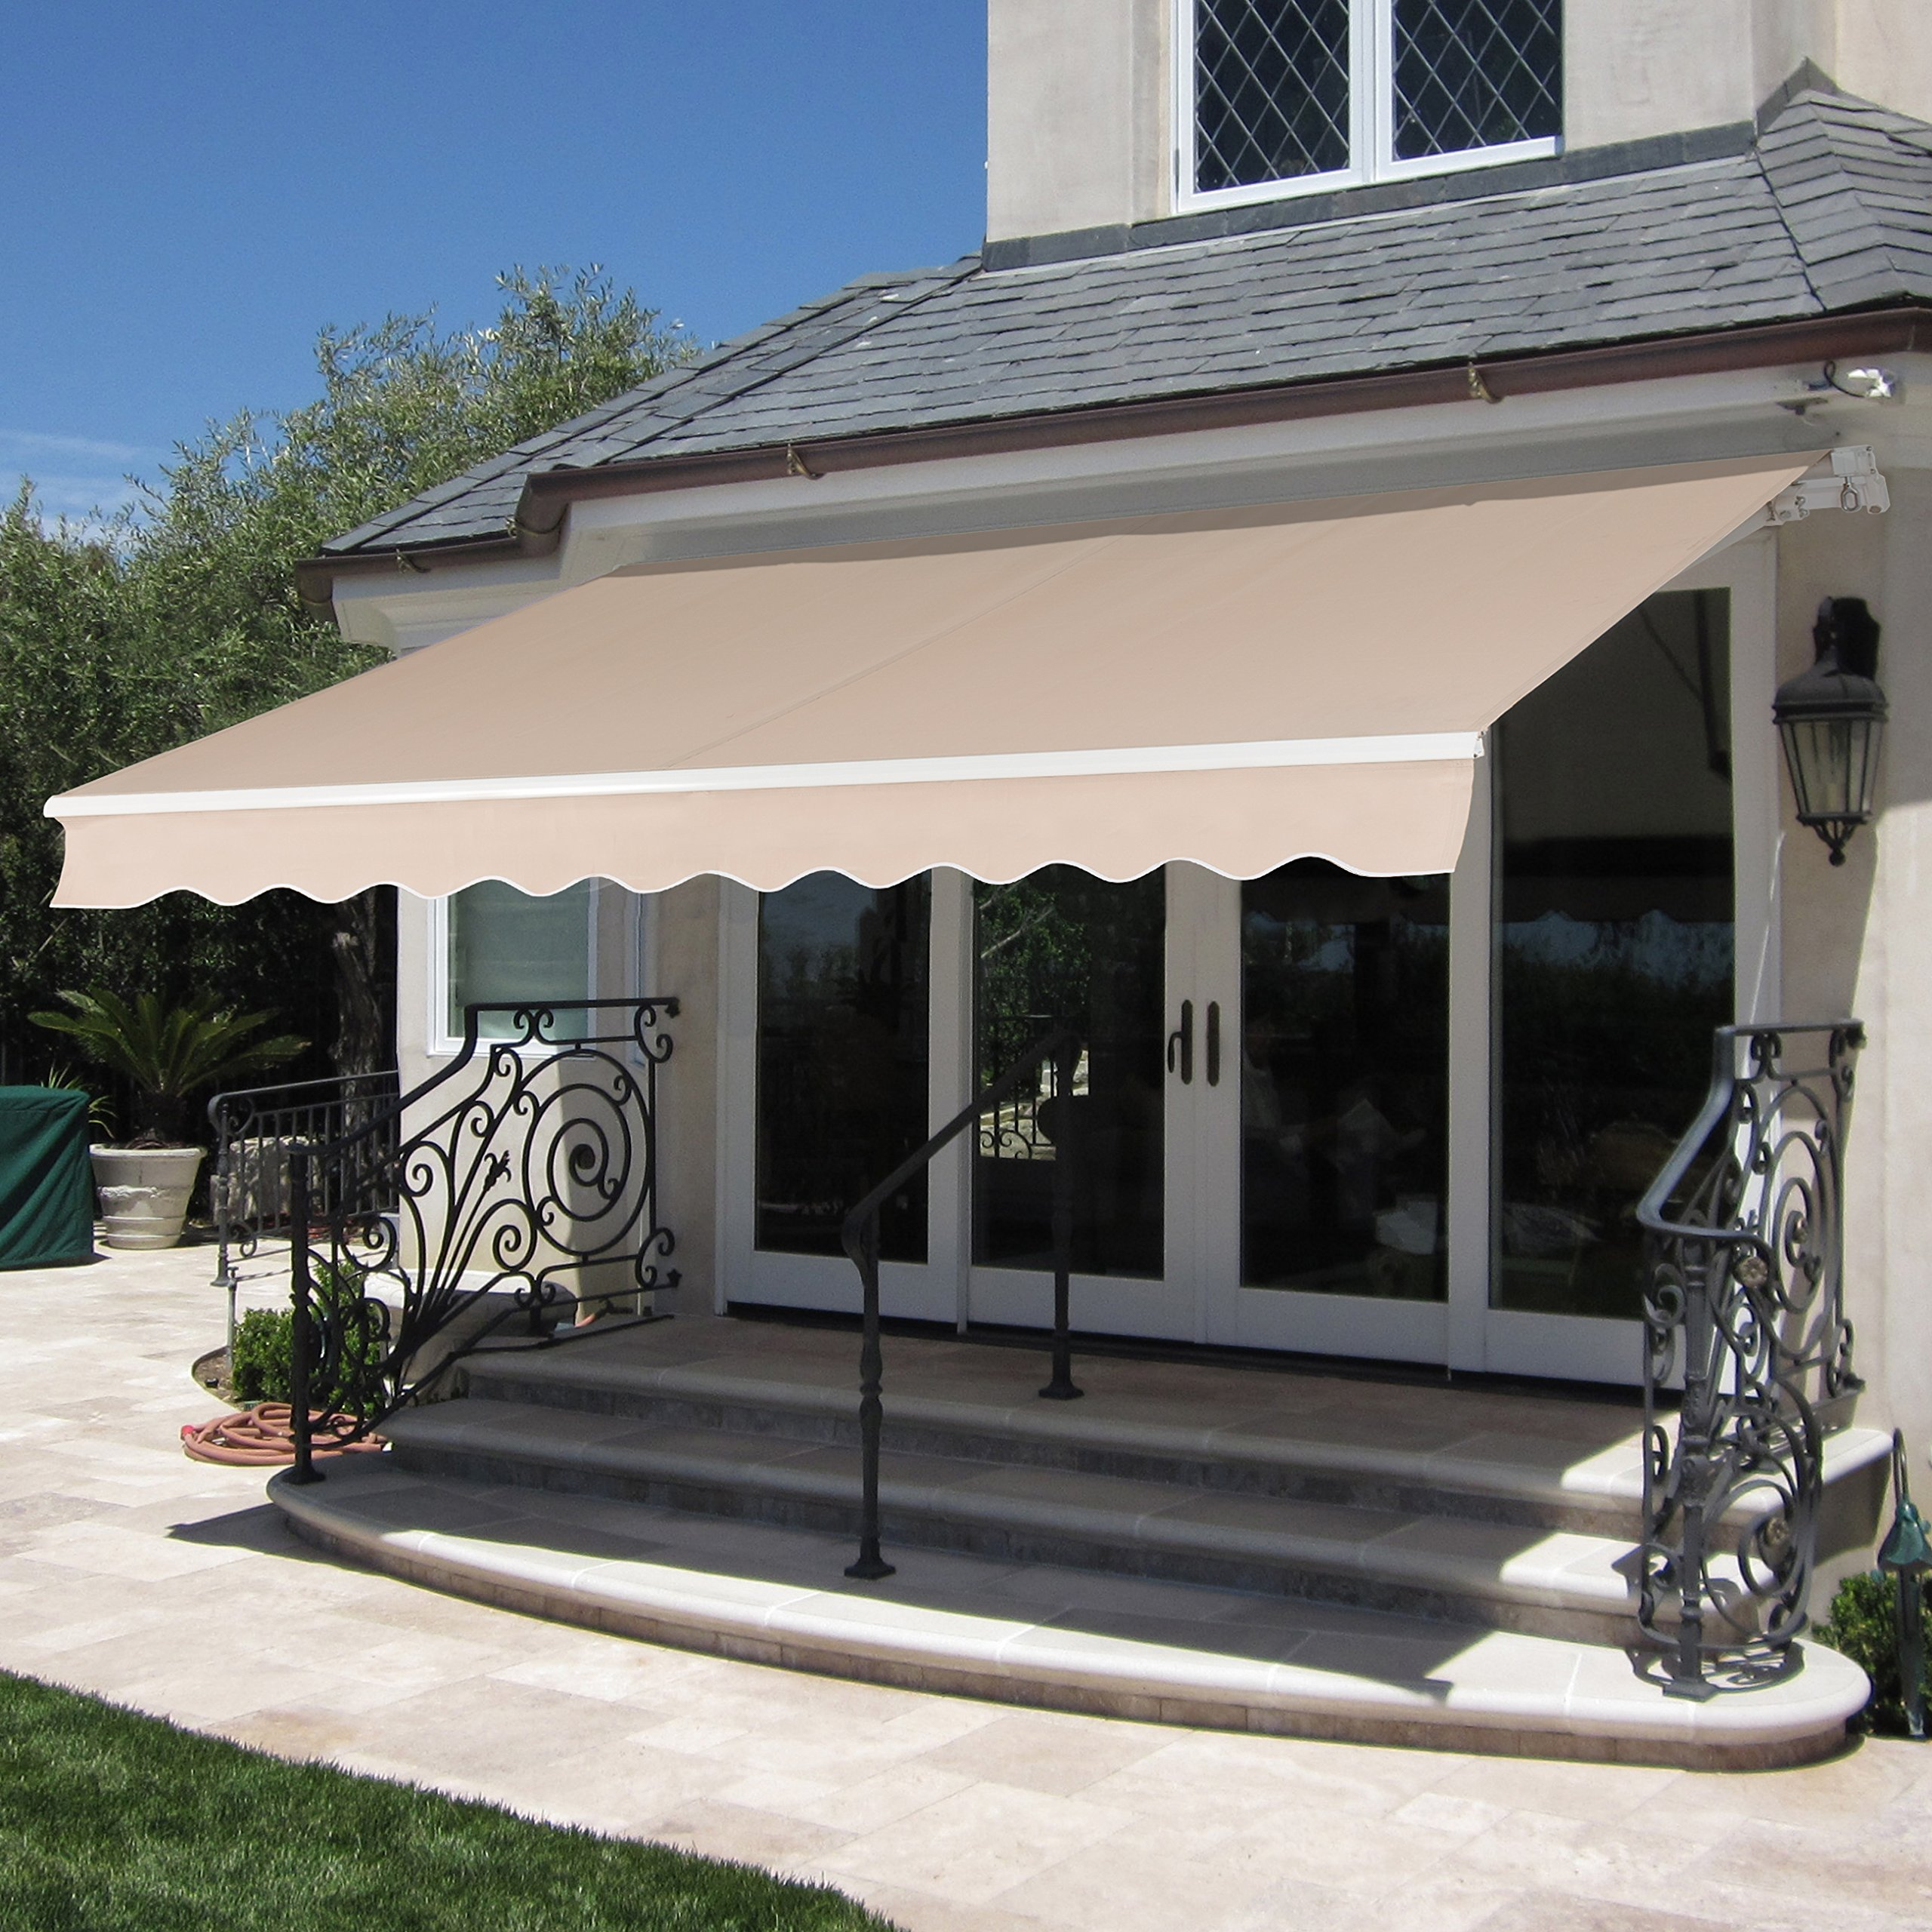 sunshade awnings amazon best canopy retractable aluminum products choice cover patio com deck pcr awning rated helpful reviews kl in beige customer